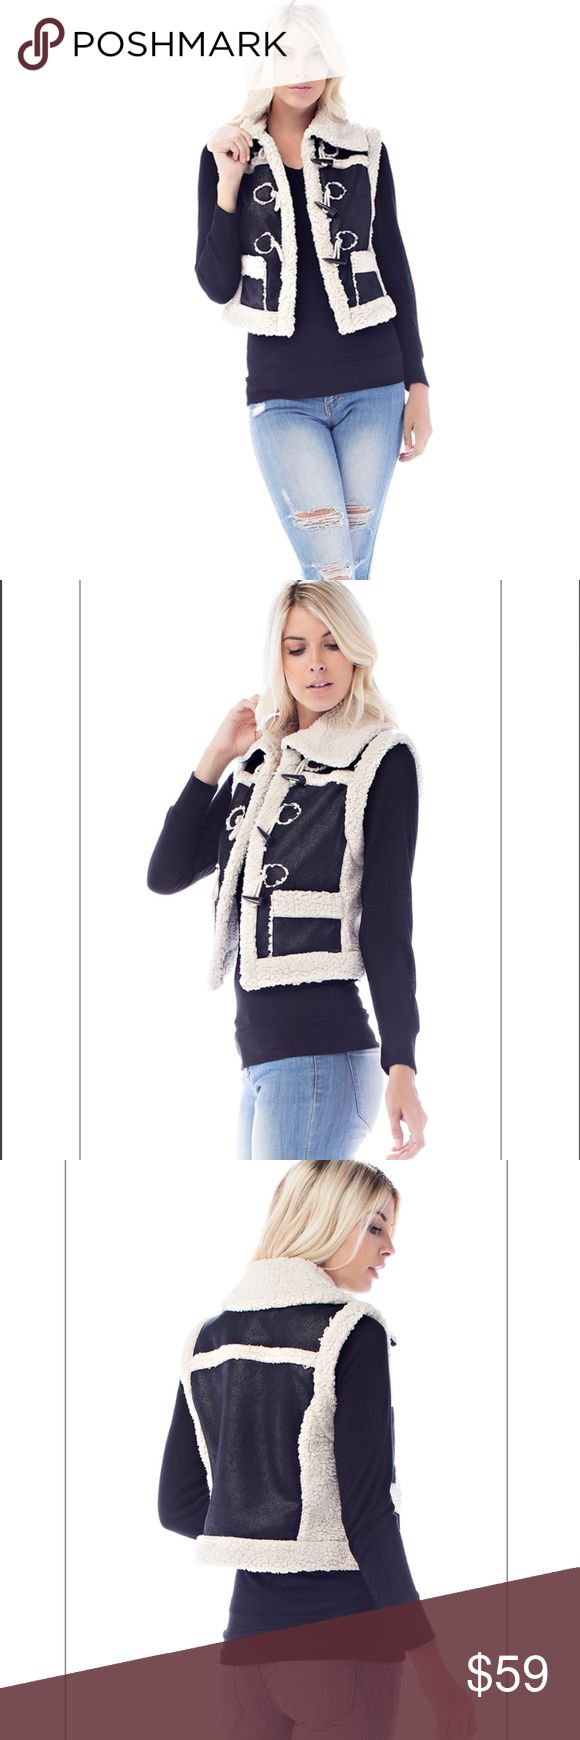 ✨NEW ARRIVAL!! Black & Cream Faux Shearling Vest✨ Adorable and winter chic black & cream faux suede shearling vest! Black soft suede material with soft cream and warm faux shearling! Collared, open front with silver hardware detail on front, crops at waist. Super cute with jeans or black pants and worn over tight fitting sweater or flannel top! Brand new from manufacturer❤️ Boutique Jackets & Coats Vests